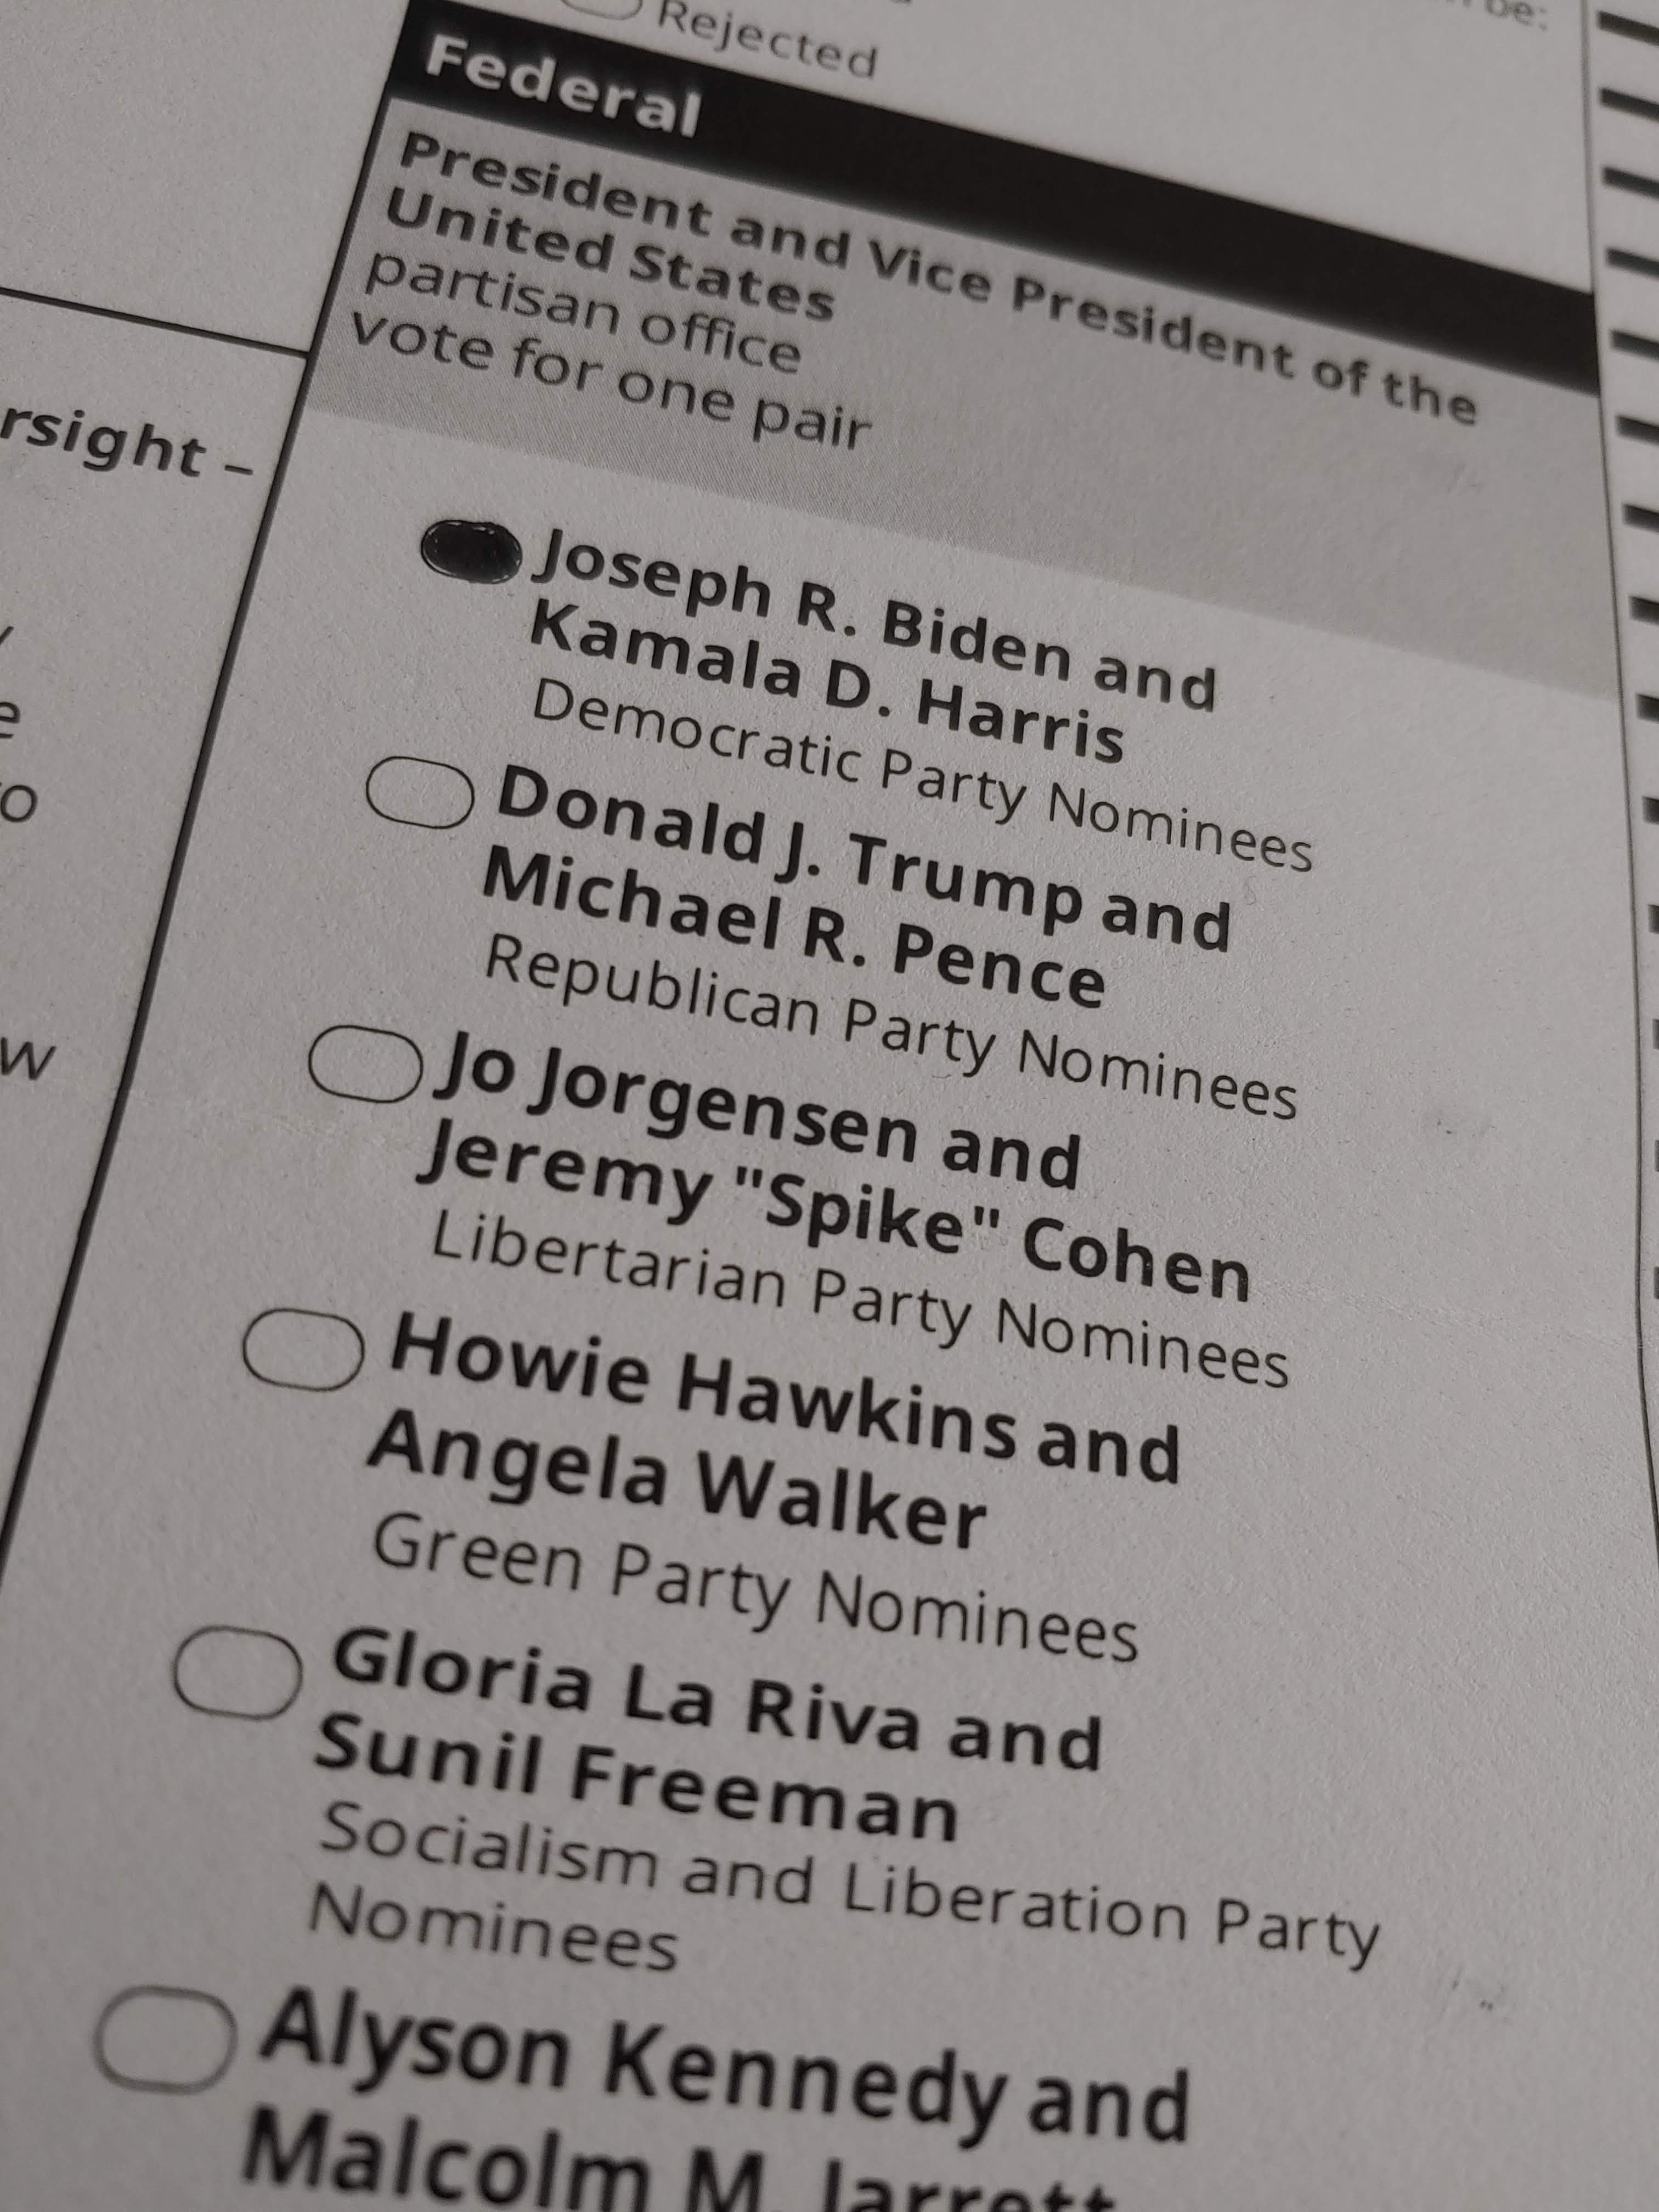 Vote for Biden/Harris